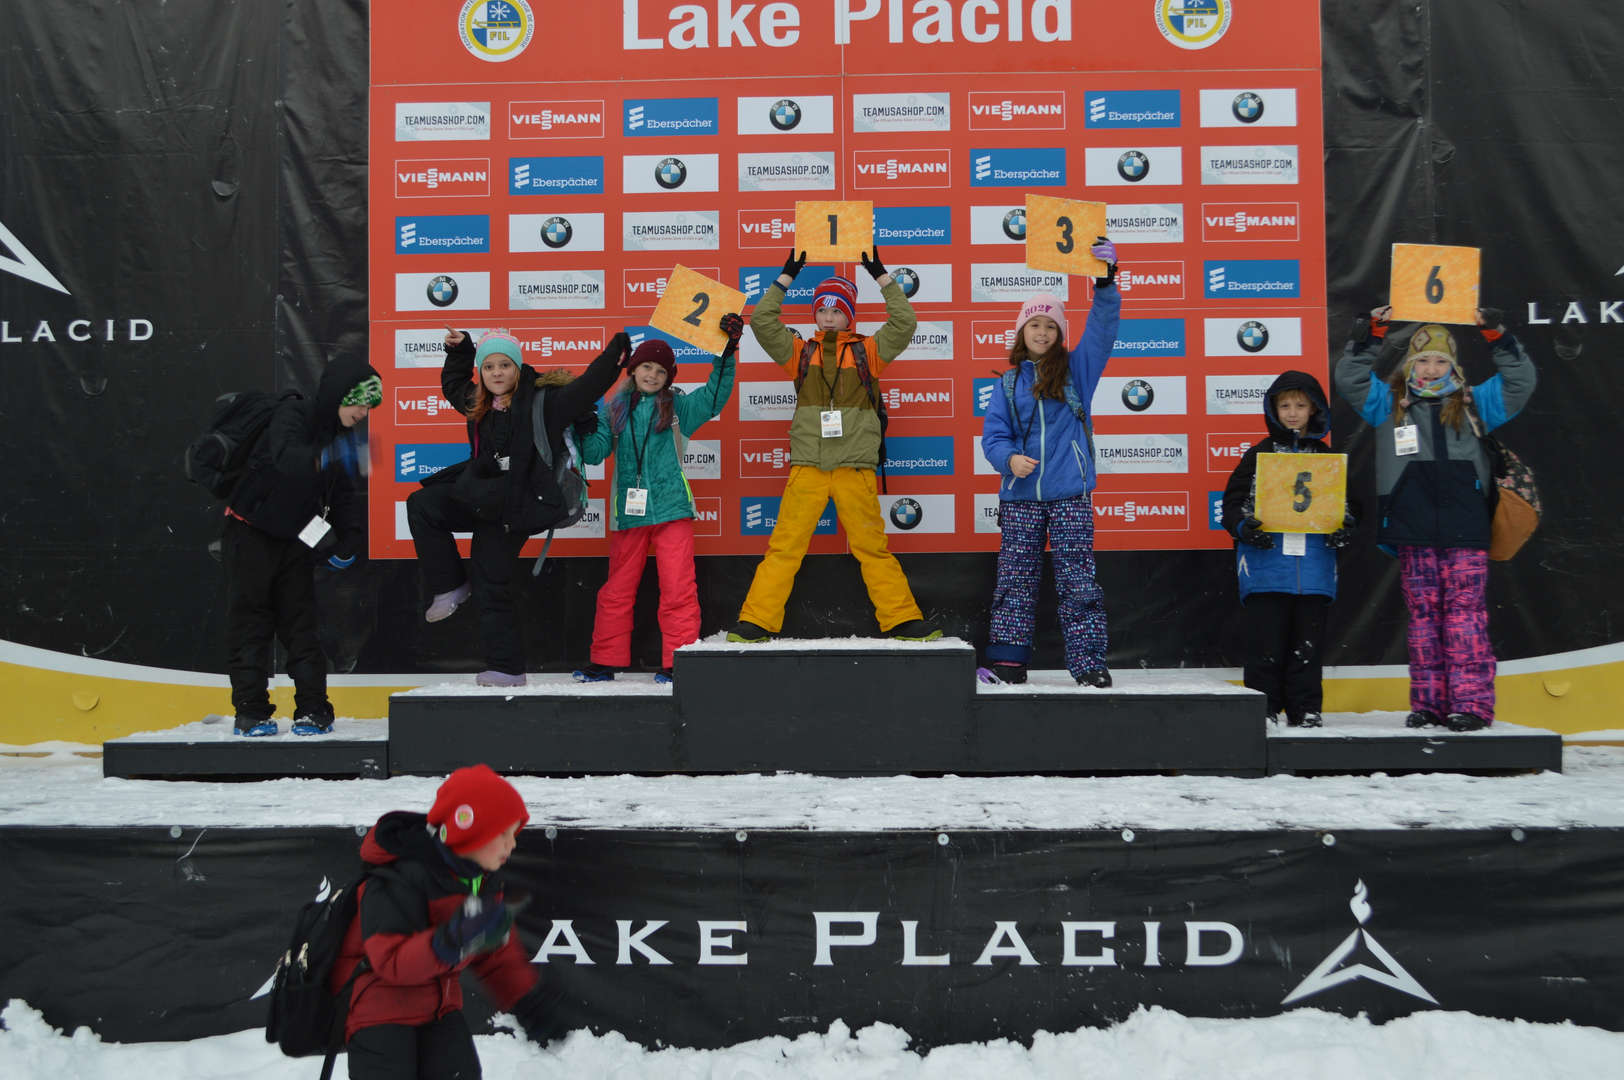 Elementary students standing on snowboarding podium